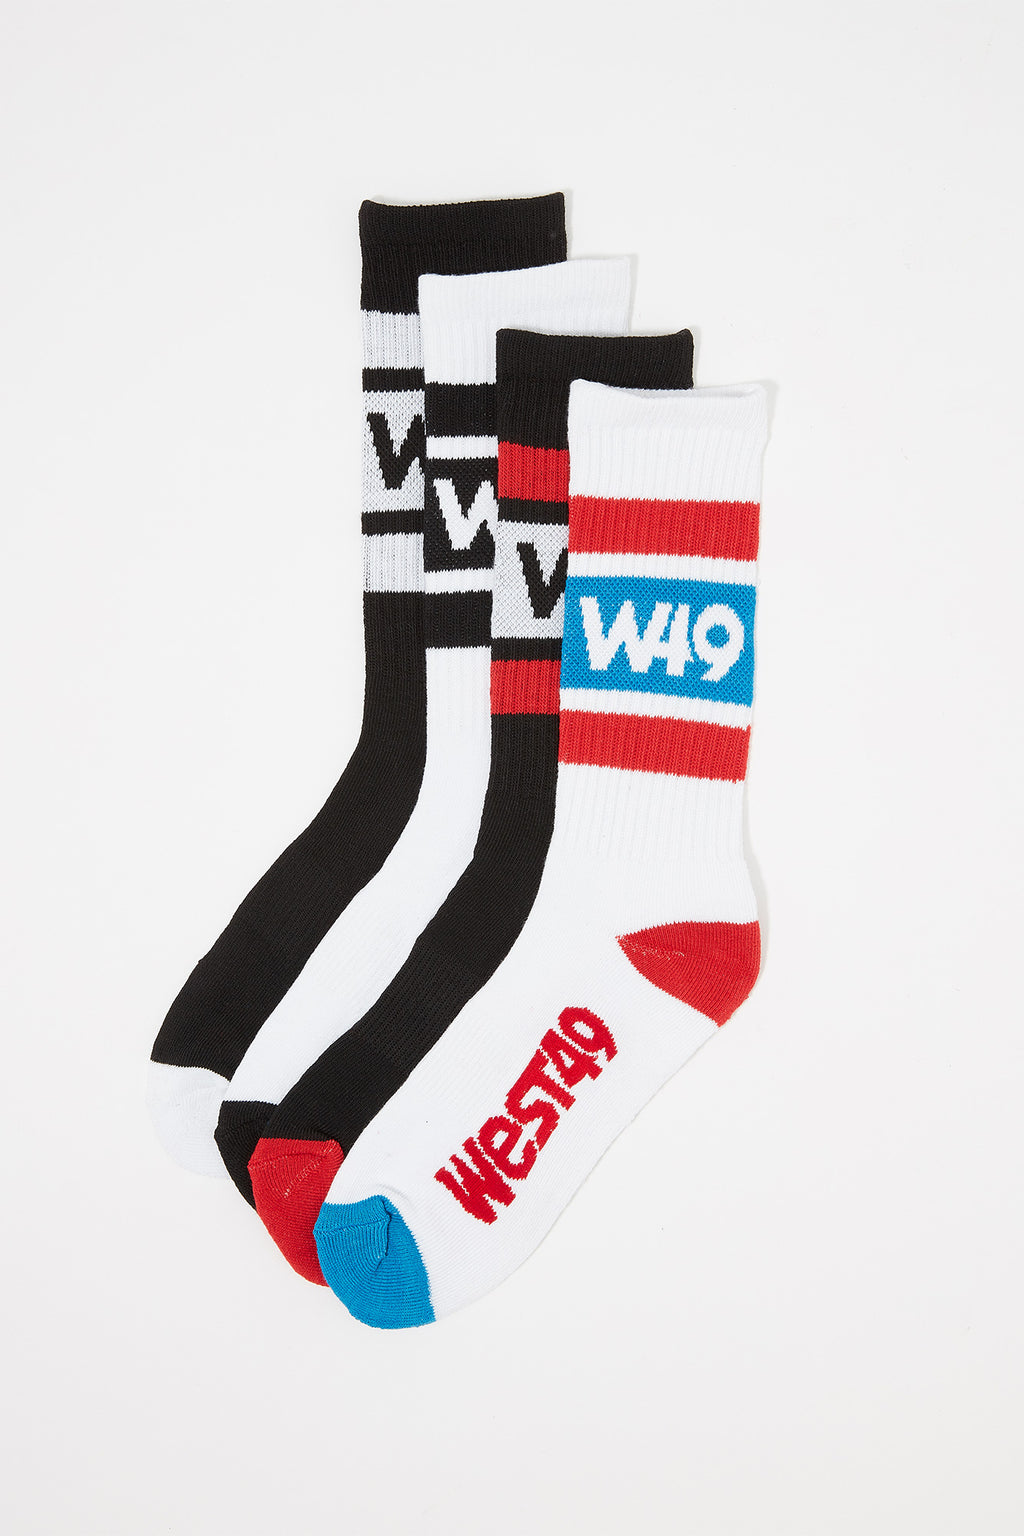 West49 Boys Athletic Crew Socks (4 Pairs)